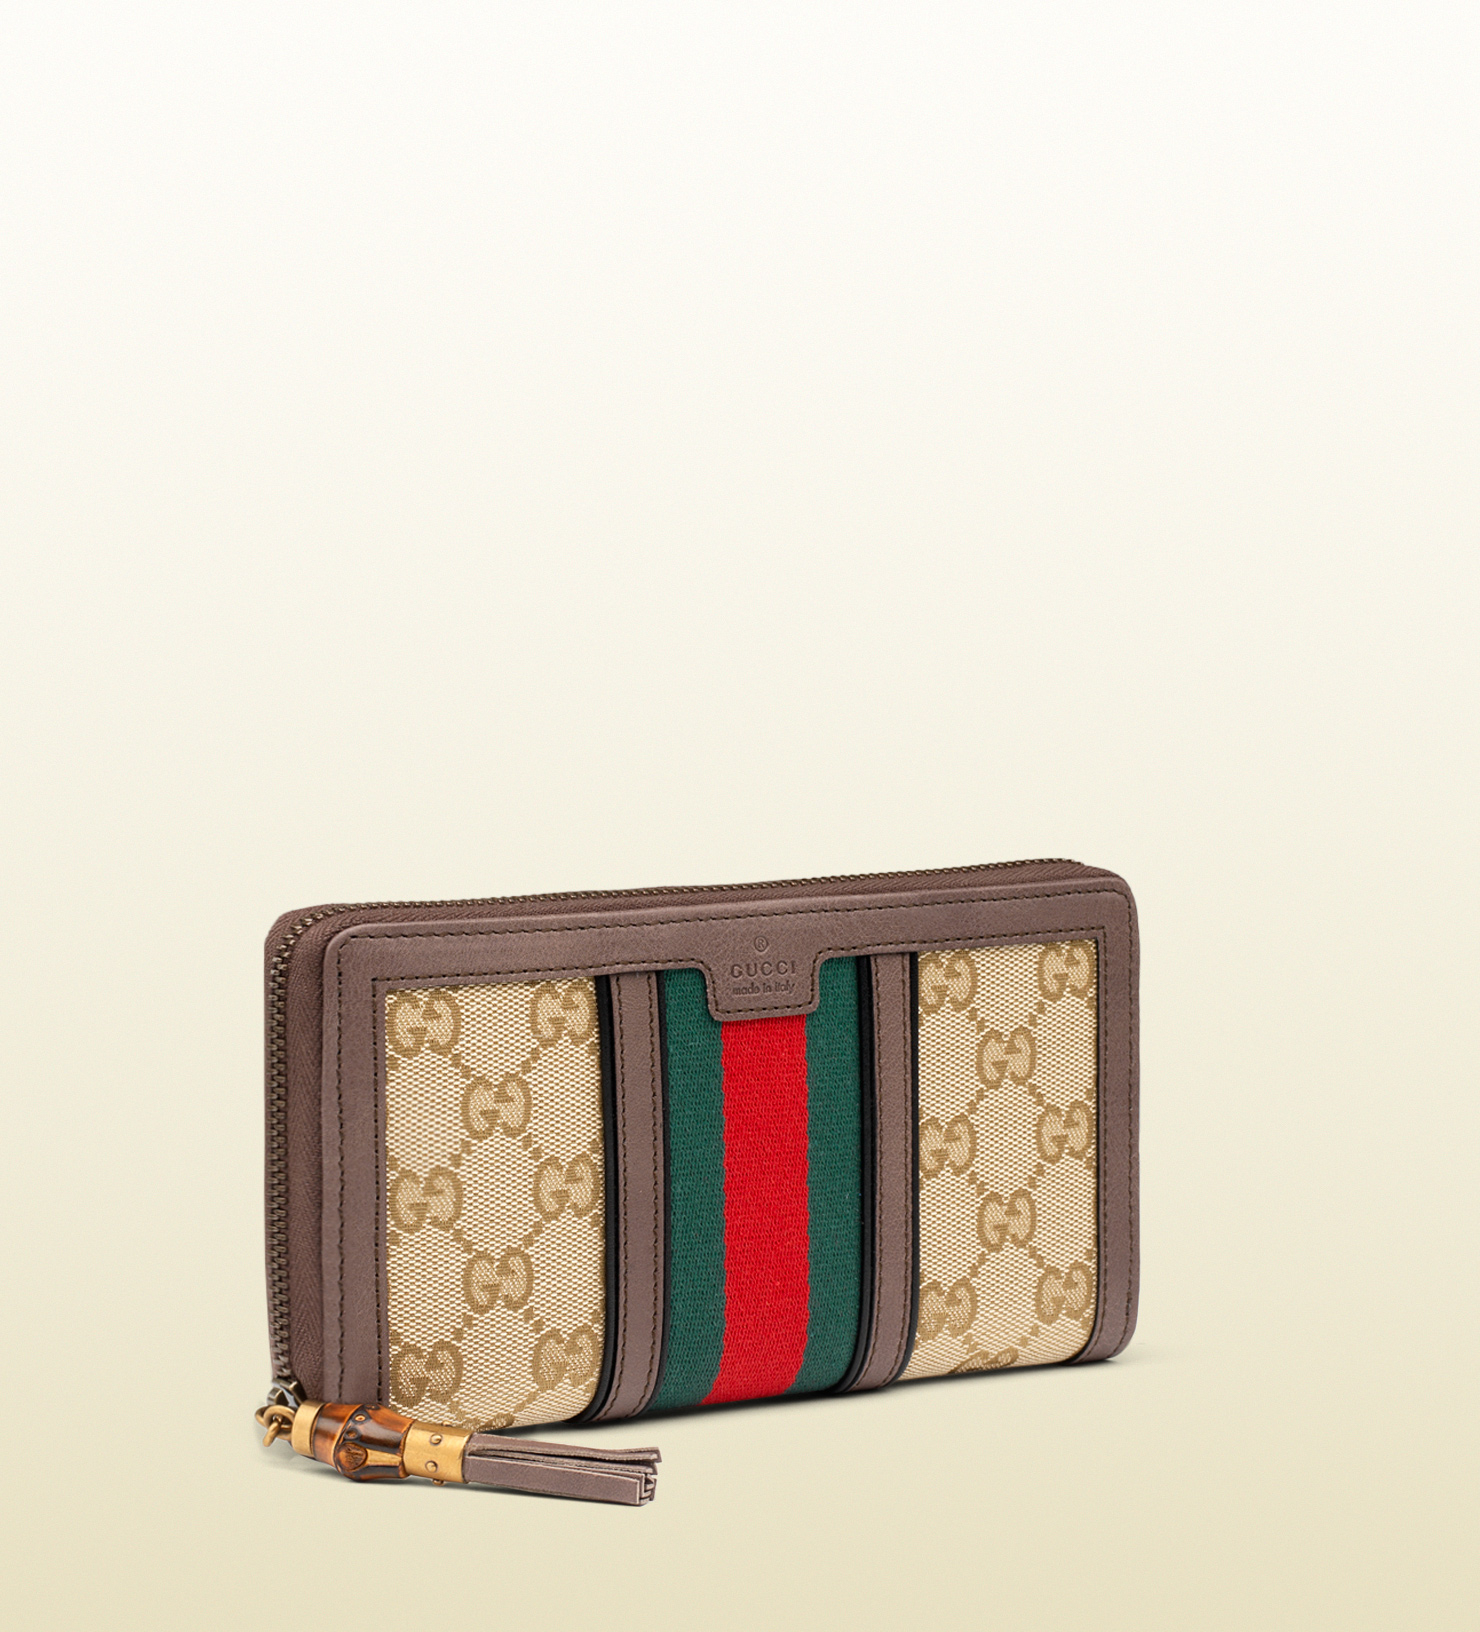 9e9a2f046c1706 Gucci Rania Original Gg Canvas Zip Around Wallet in Red for Men - Lyst